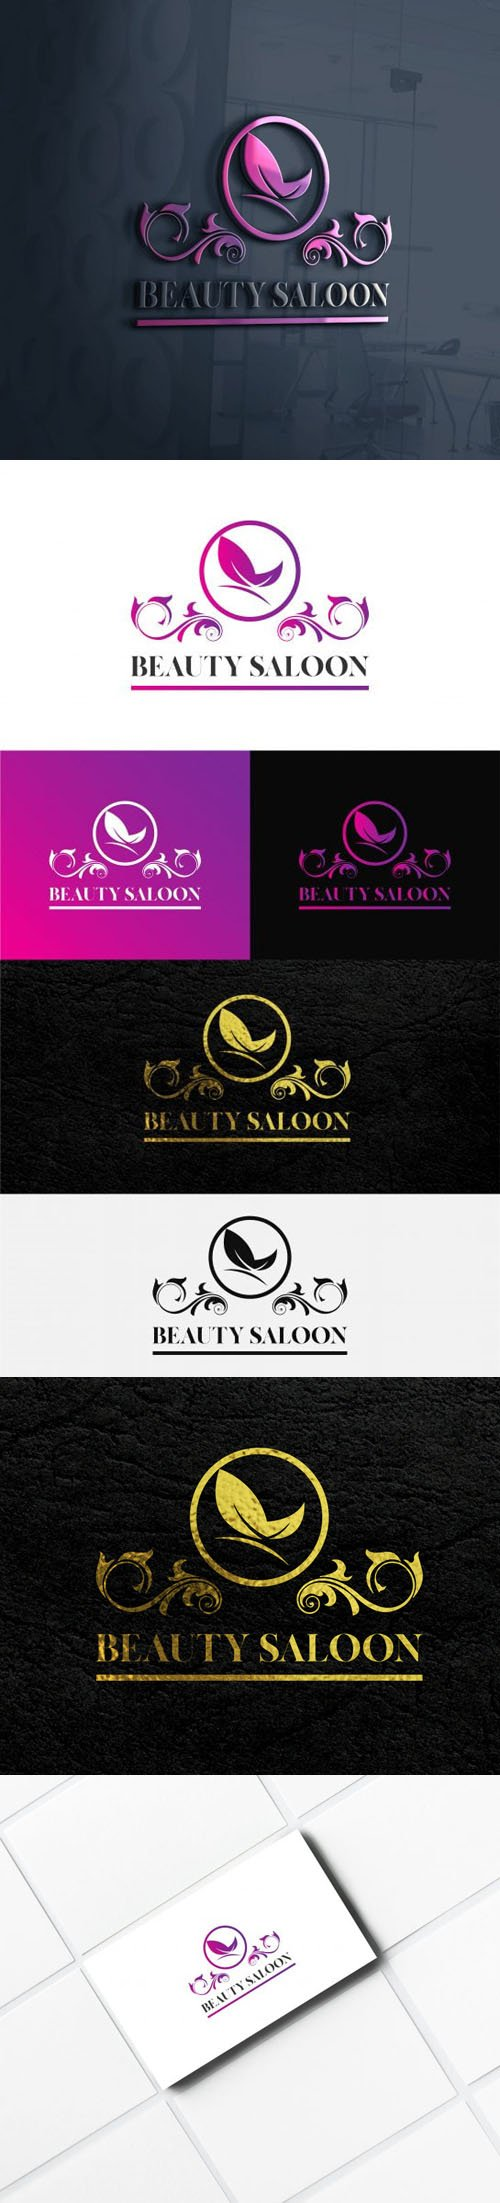 Beauty Saloon Logo Templates for Illustrator